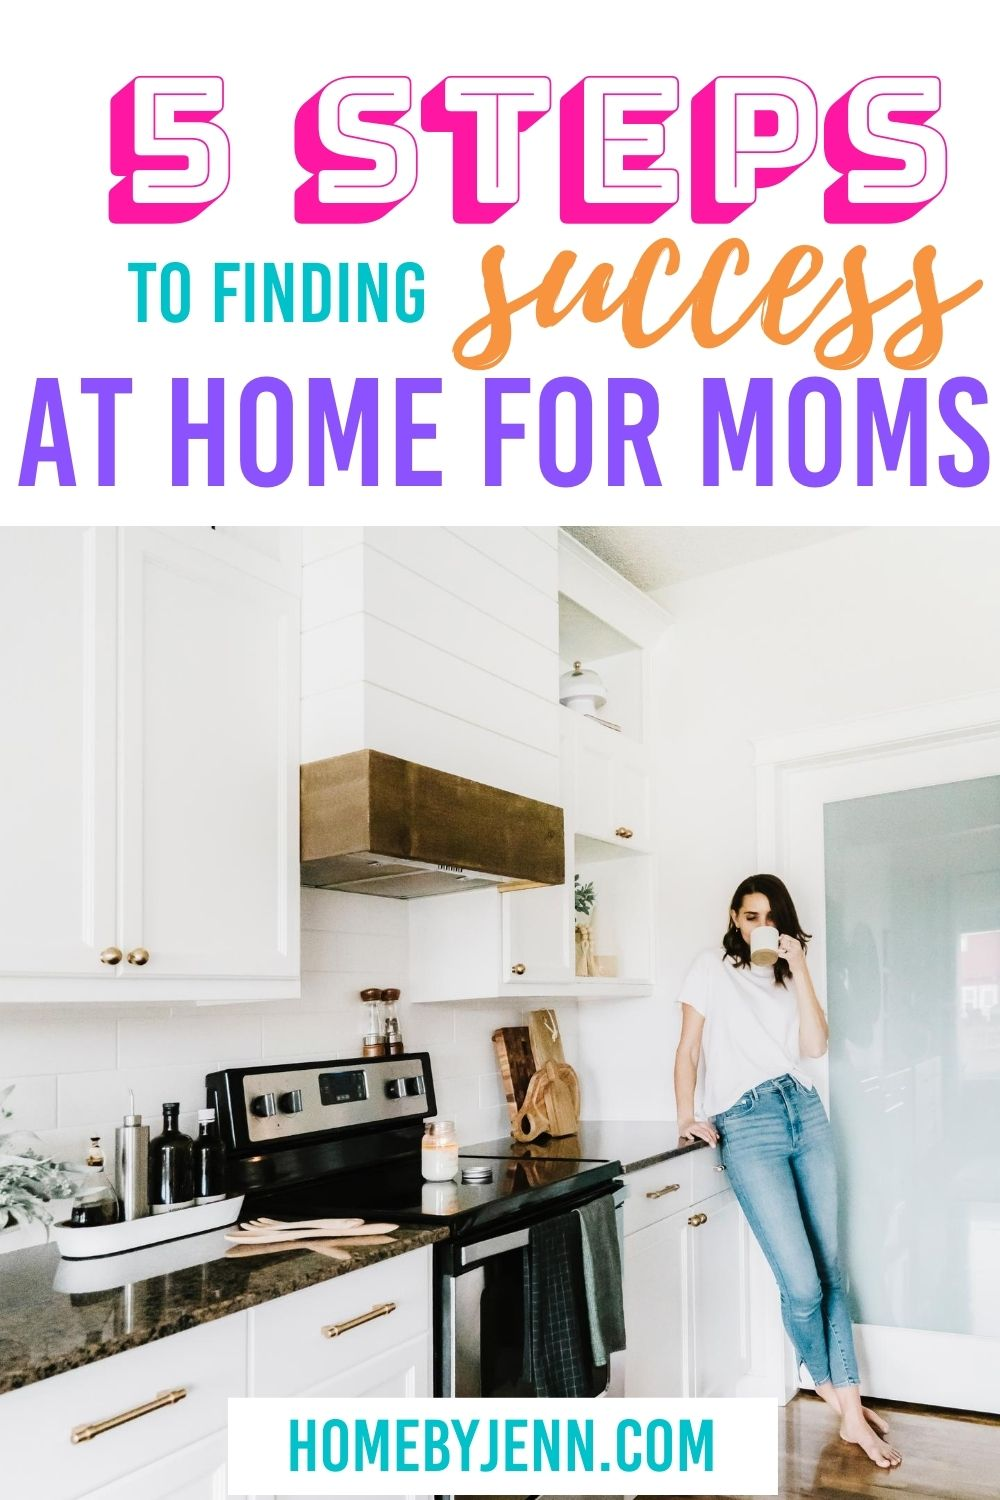 Learn the 5 steps to success at home for moms who are always on the go. Simple tips when utilized have major success overall. #successathome #success #stayathome #moms #tips #gettingorganized #planner #prep via @homebyjenn